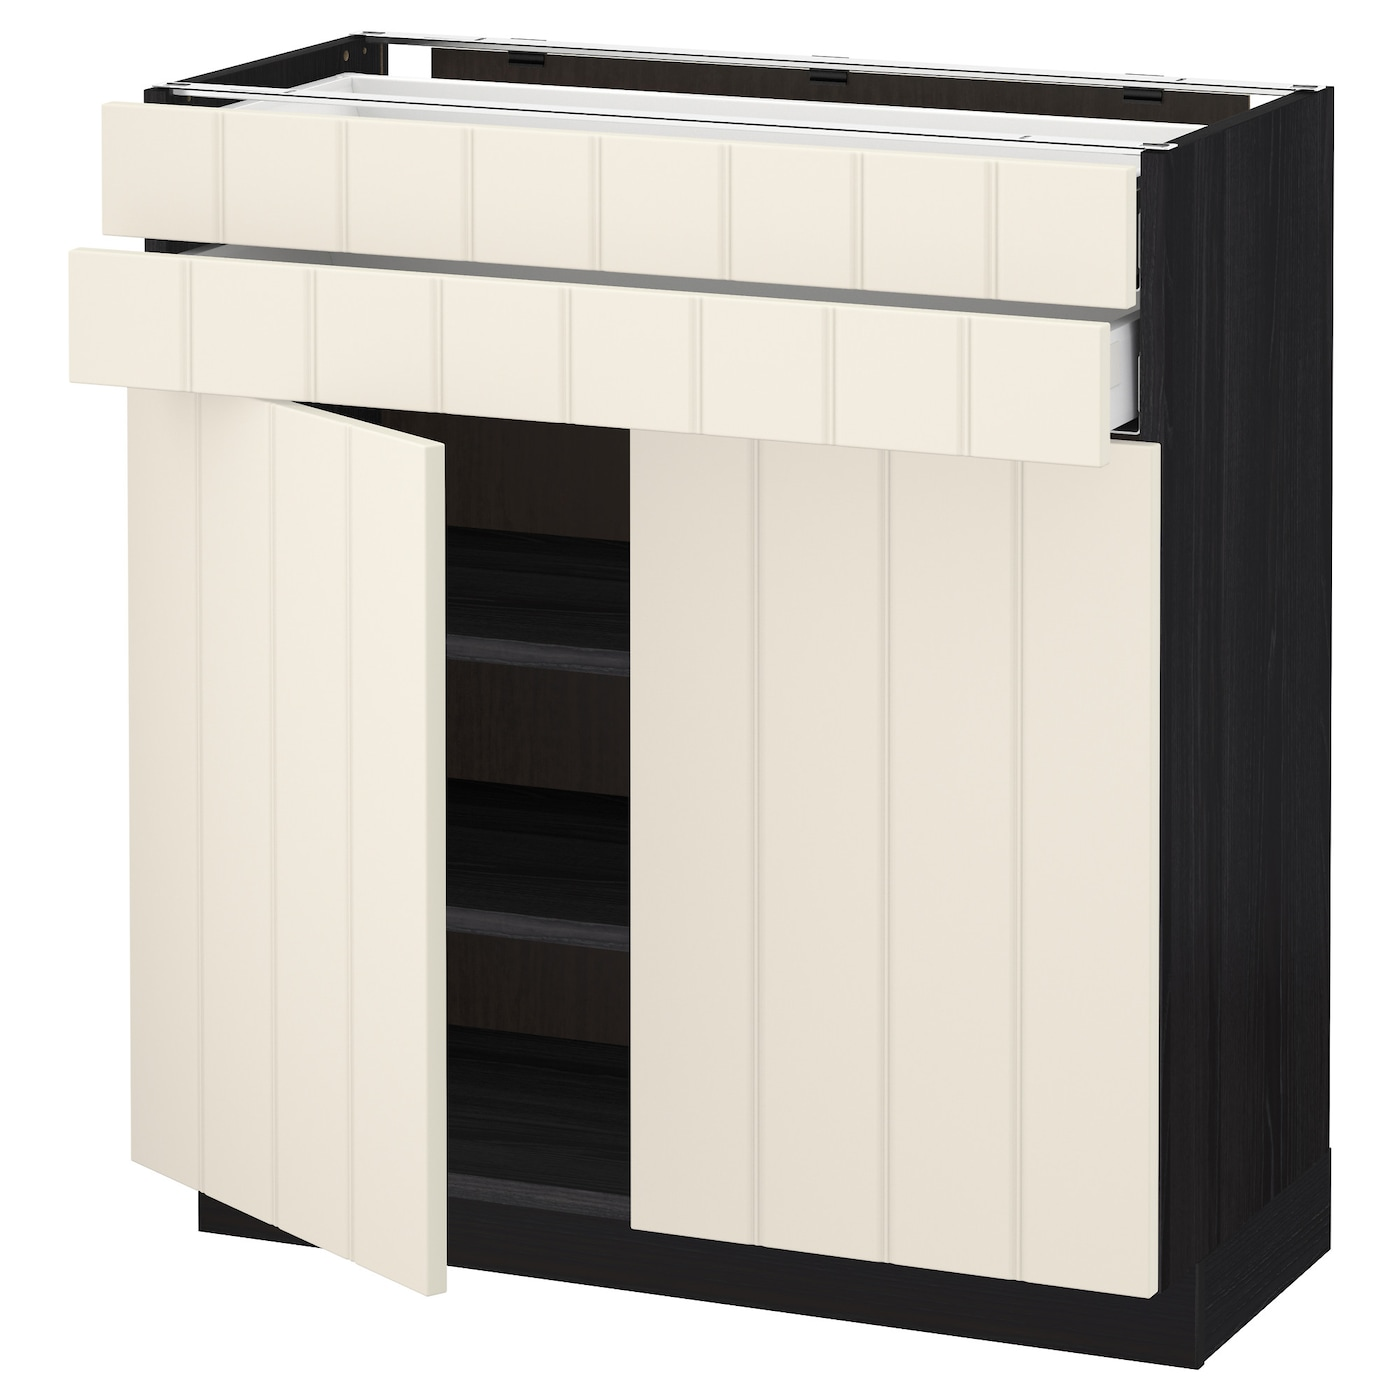 metod maximera base cabinet w 2 doors 2 drawers black hittarp off white 80x37 cm ikea. Black Bedroom Furniture Sets. Home Design Ideas